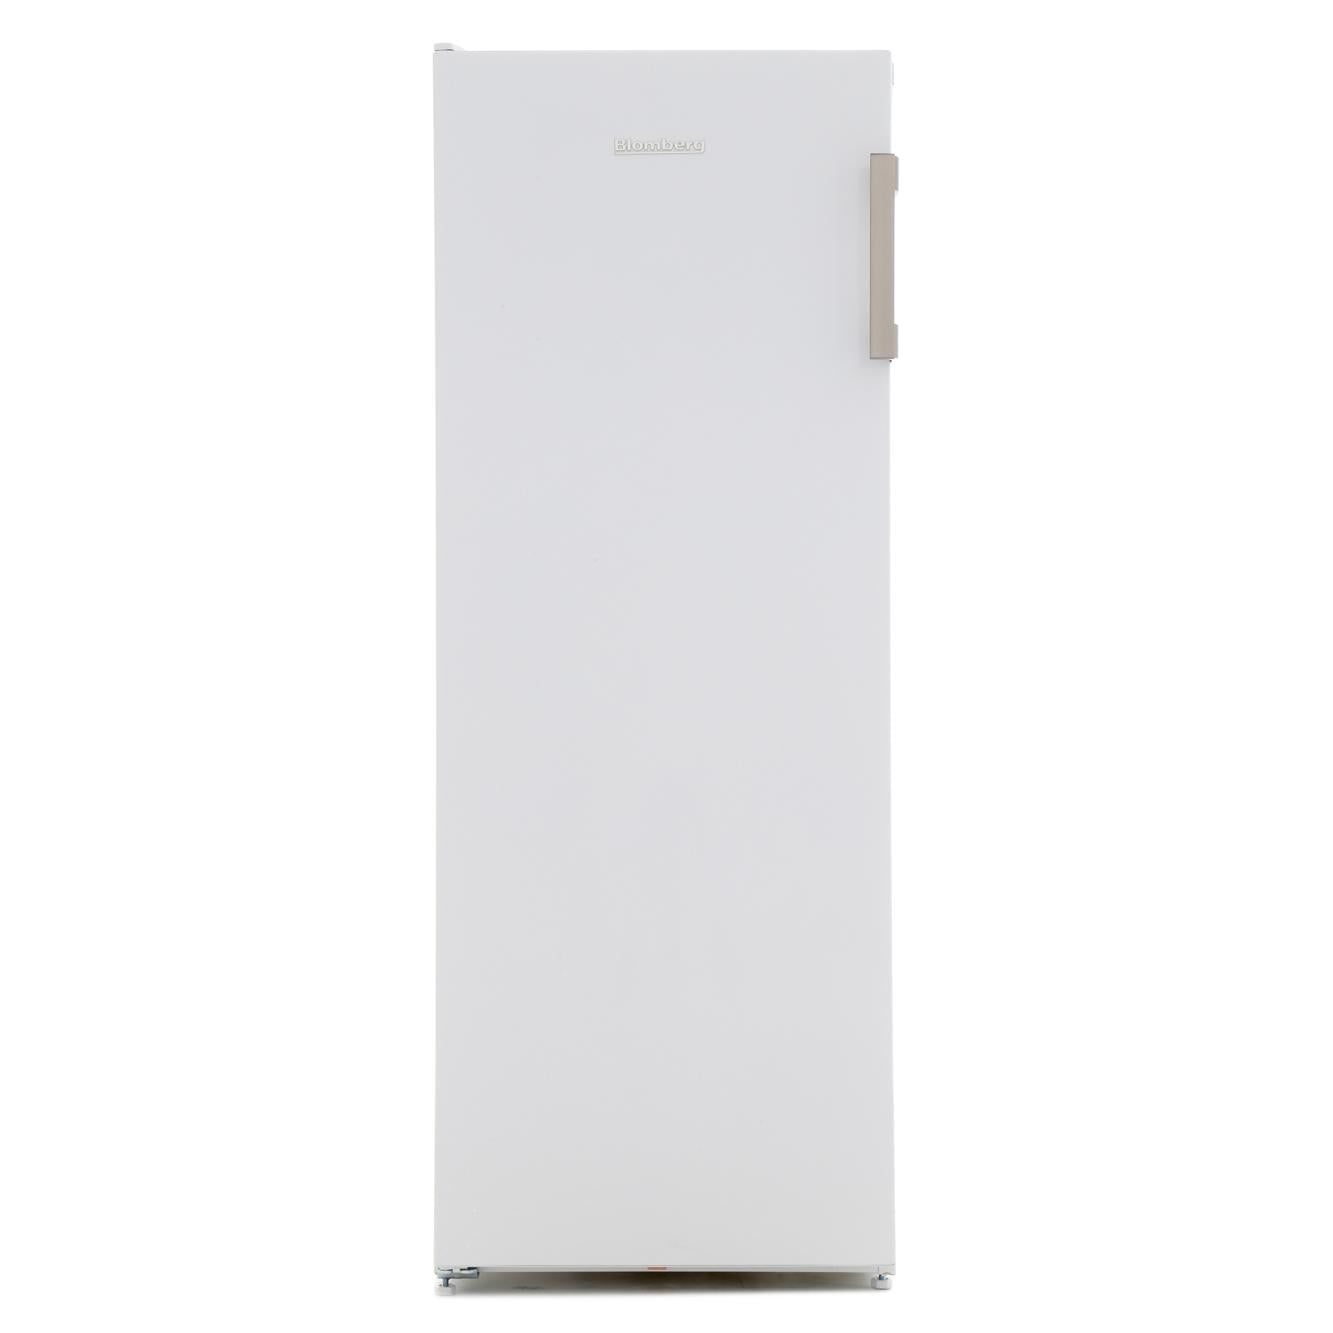 Blomberg FNT4550 55cm Frost Free Tall Freezer - Appliance Village